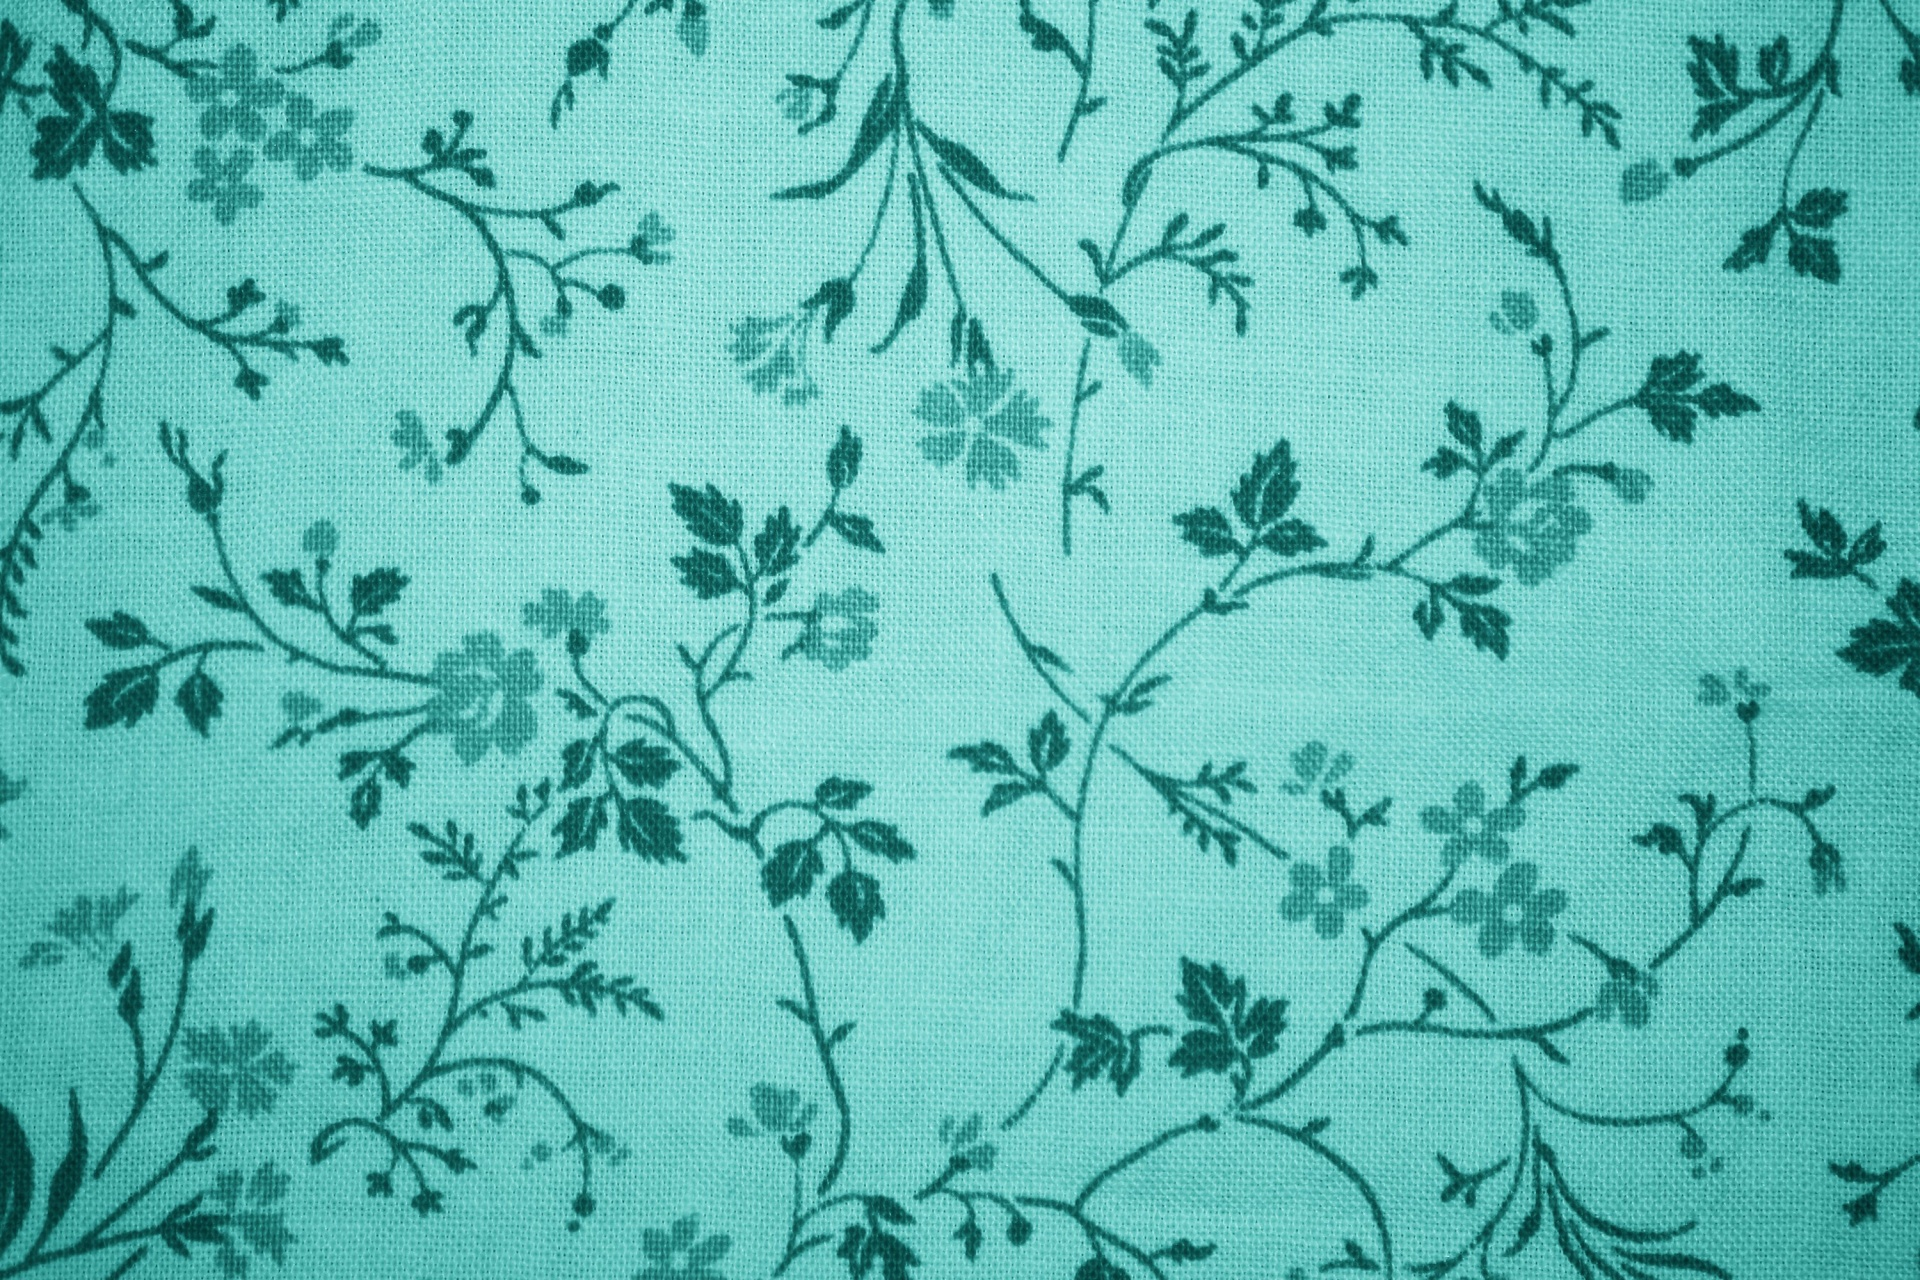 Fabric Texture Floral Pattern Coating Free Image From Needpix Com